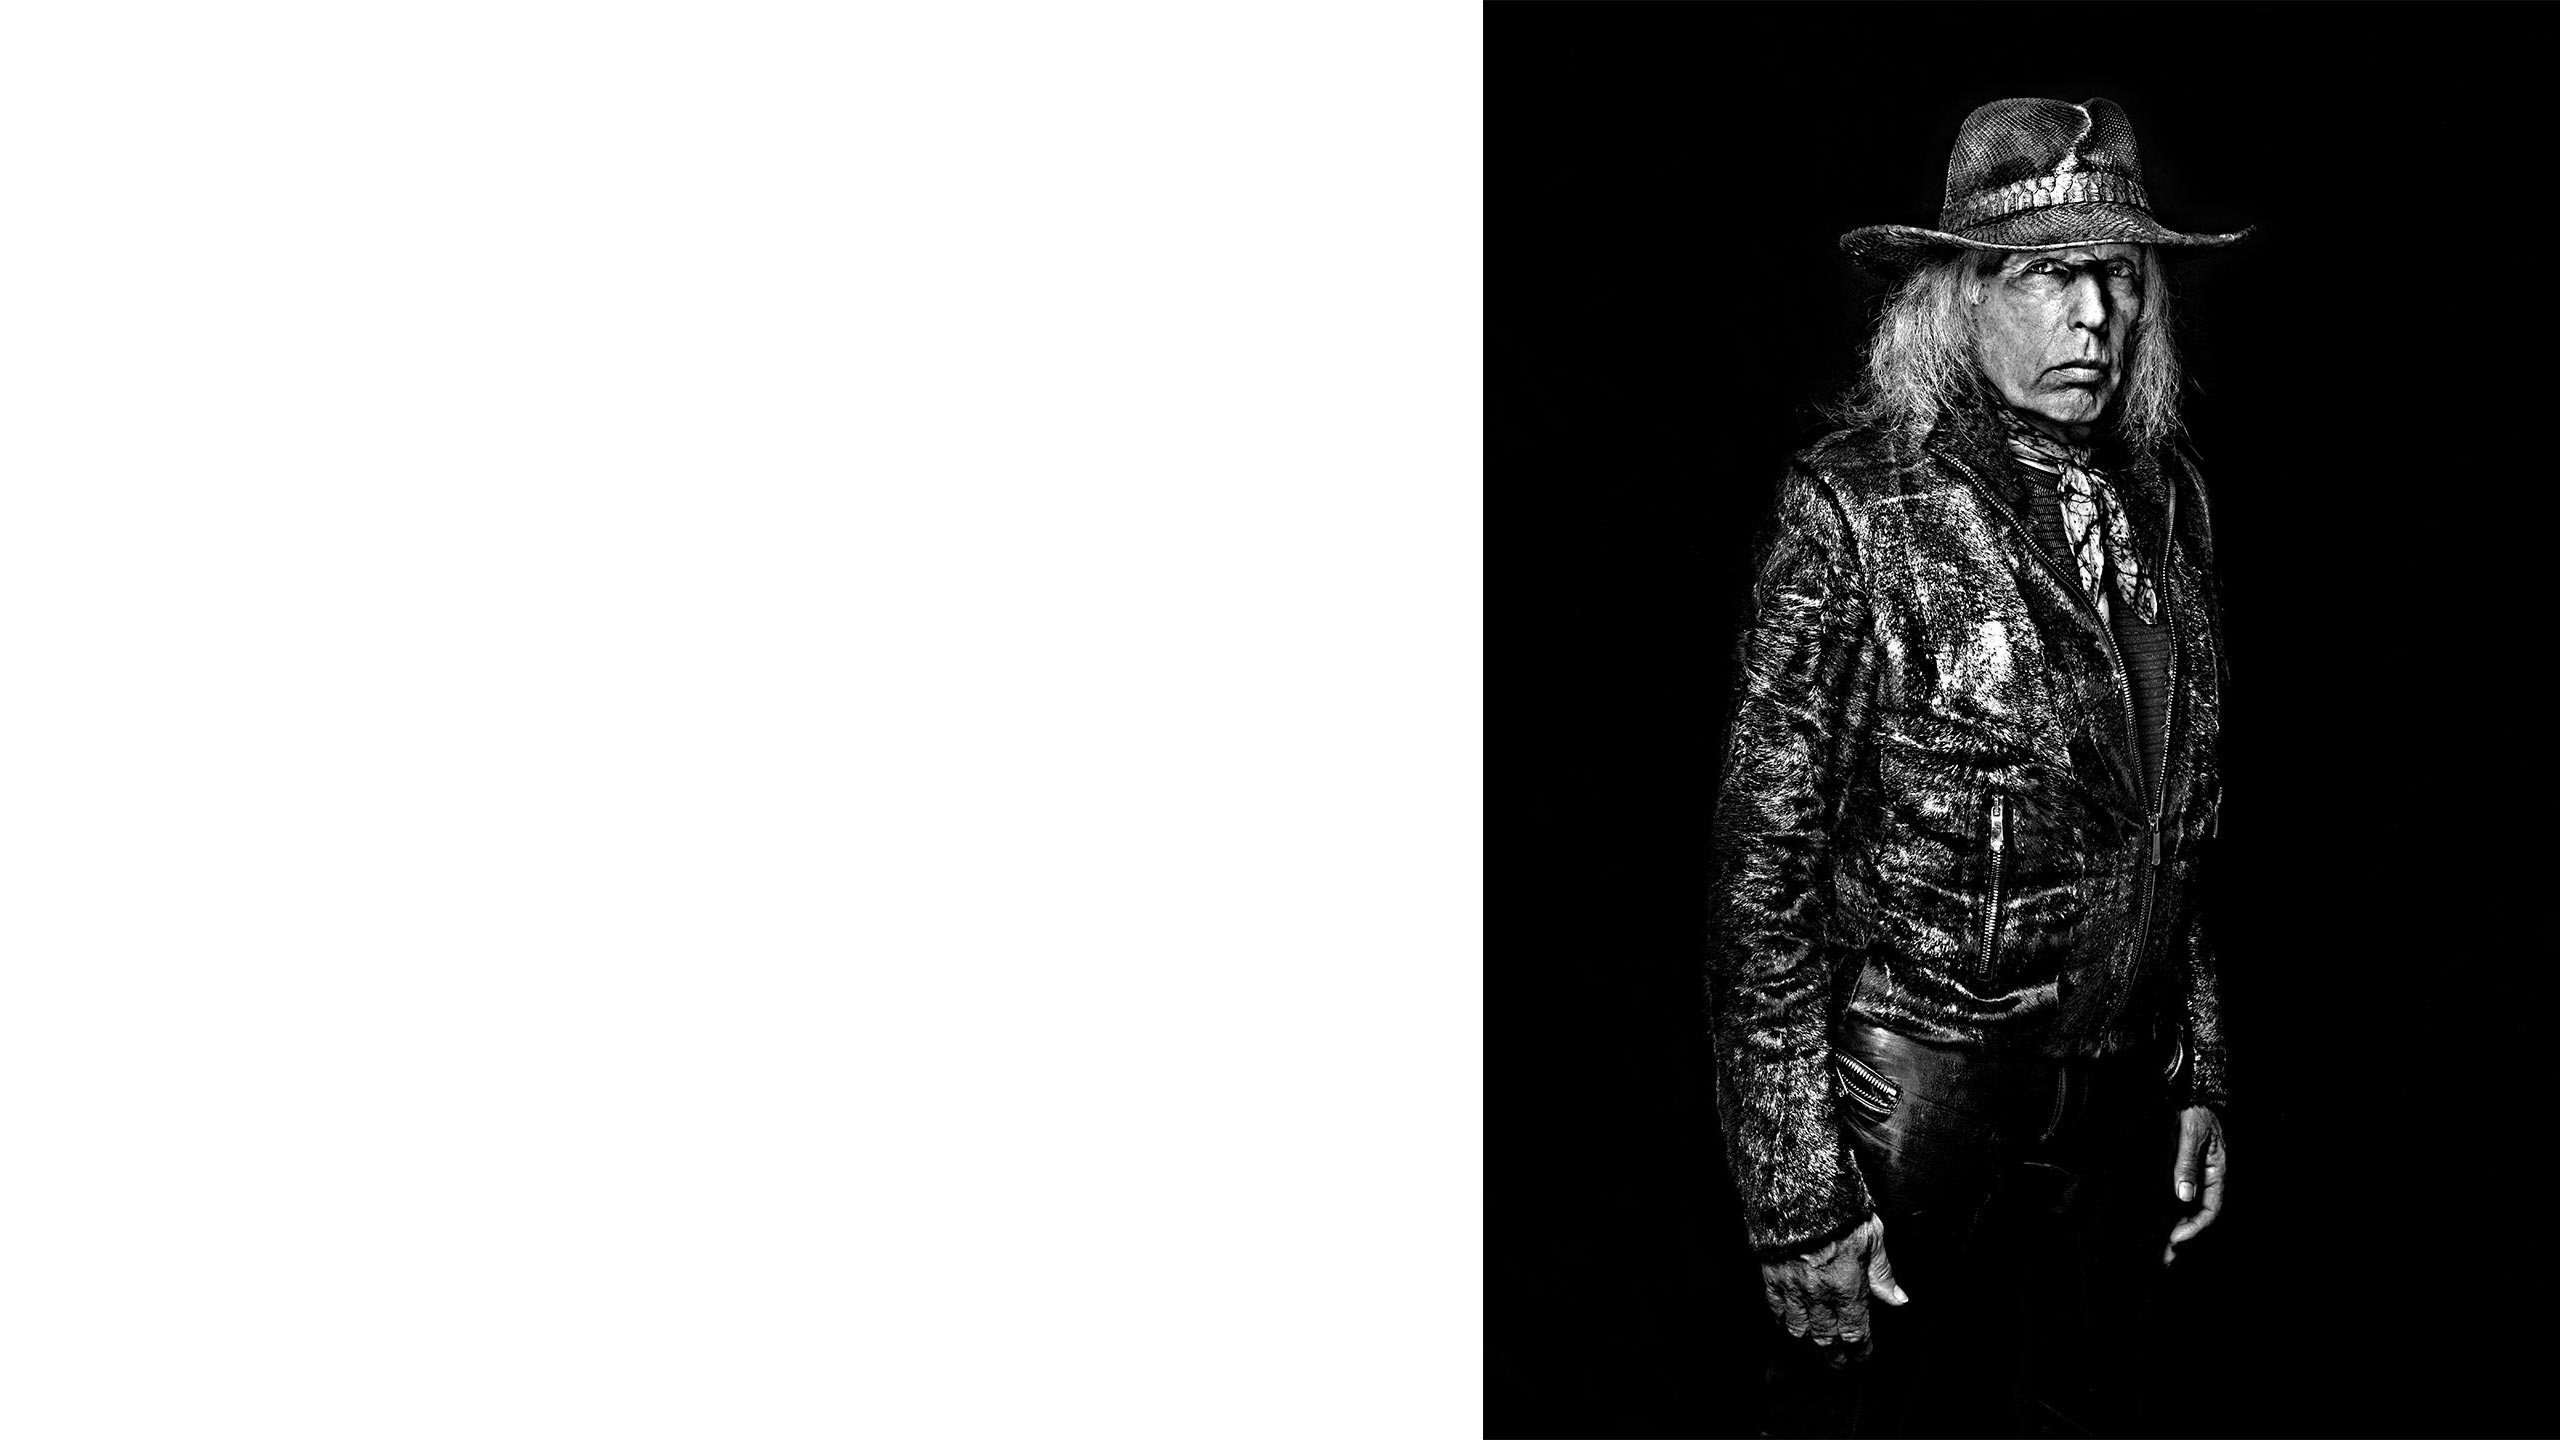 JAMES_GOLDSTEIN_BY_PATRIZIO_DI_RENZO_1